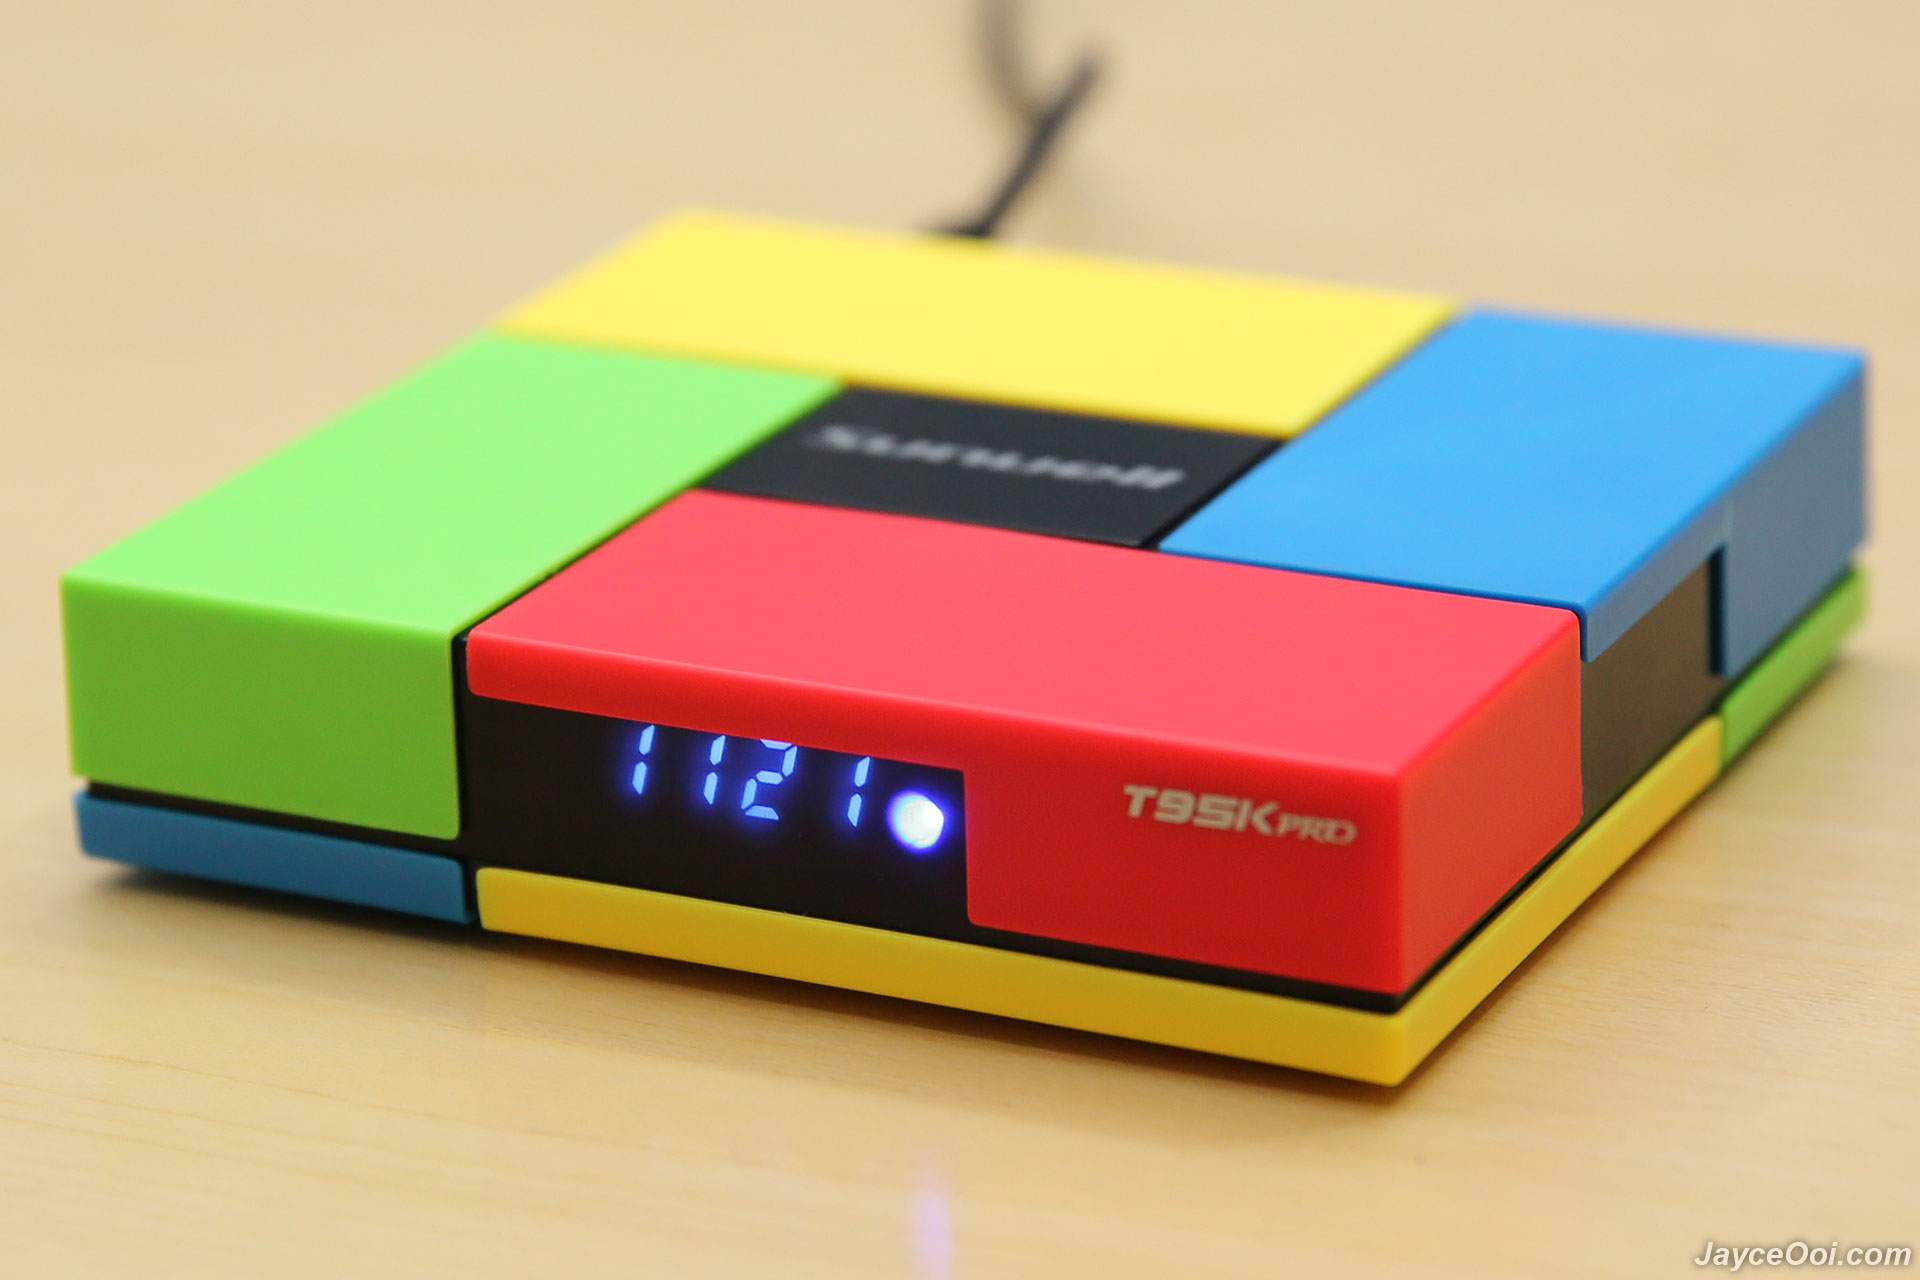 sunvell t95k pro android tv box review. Black Bedroom Furniture Sets. Home Design Ideas